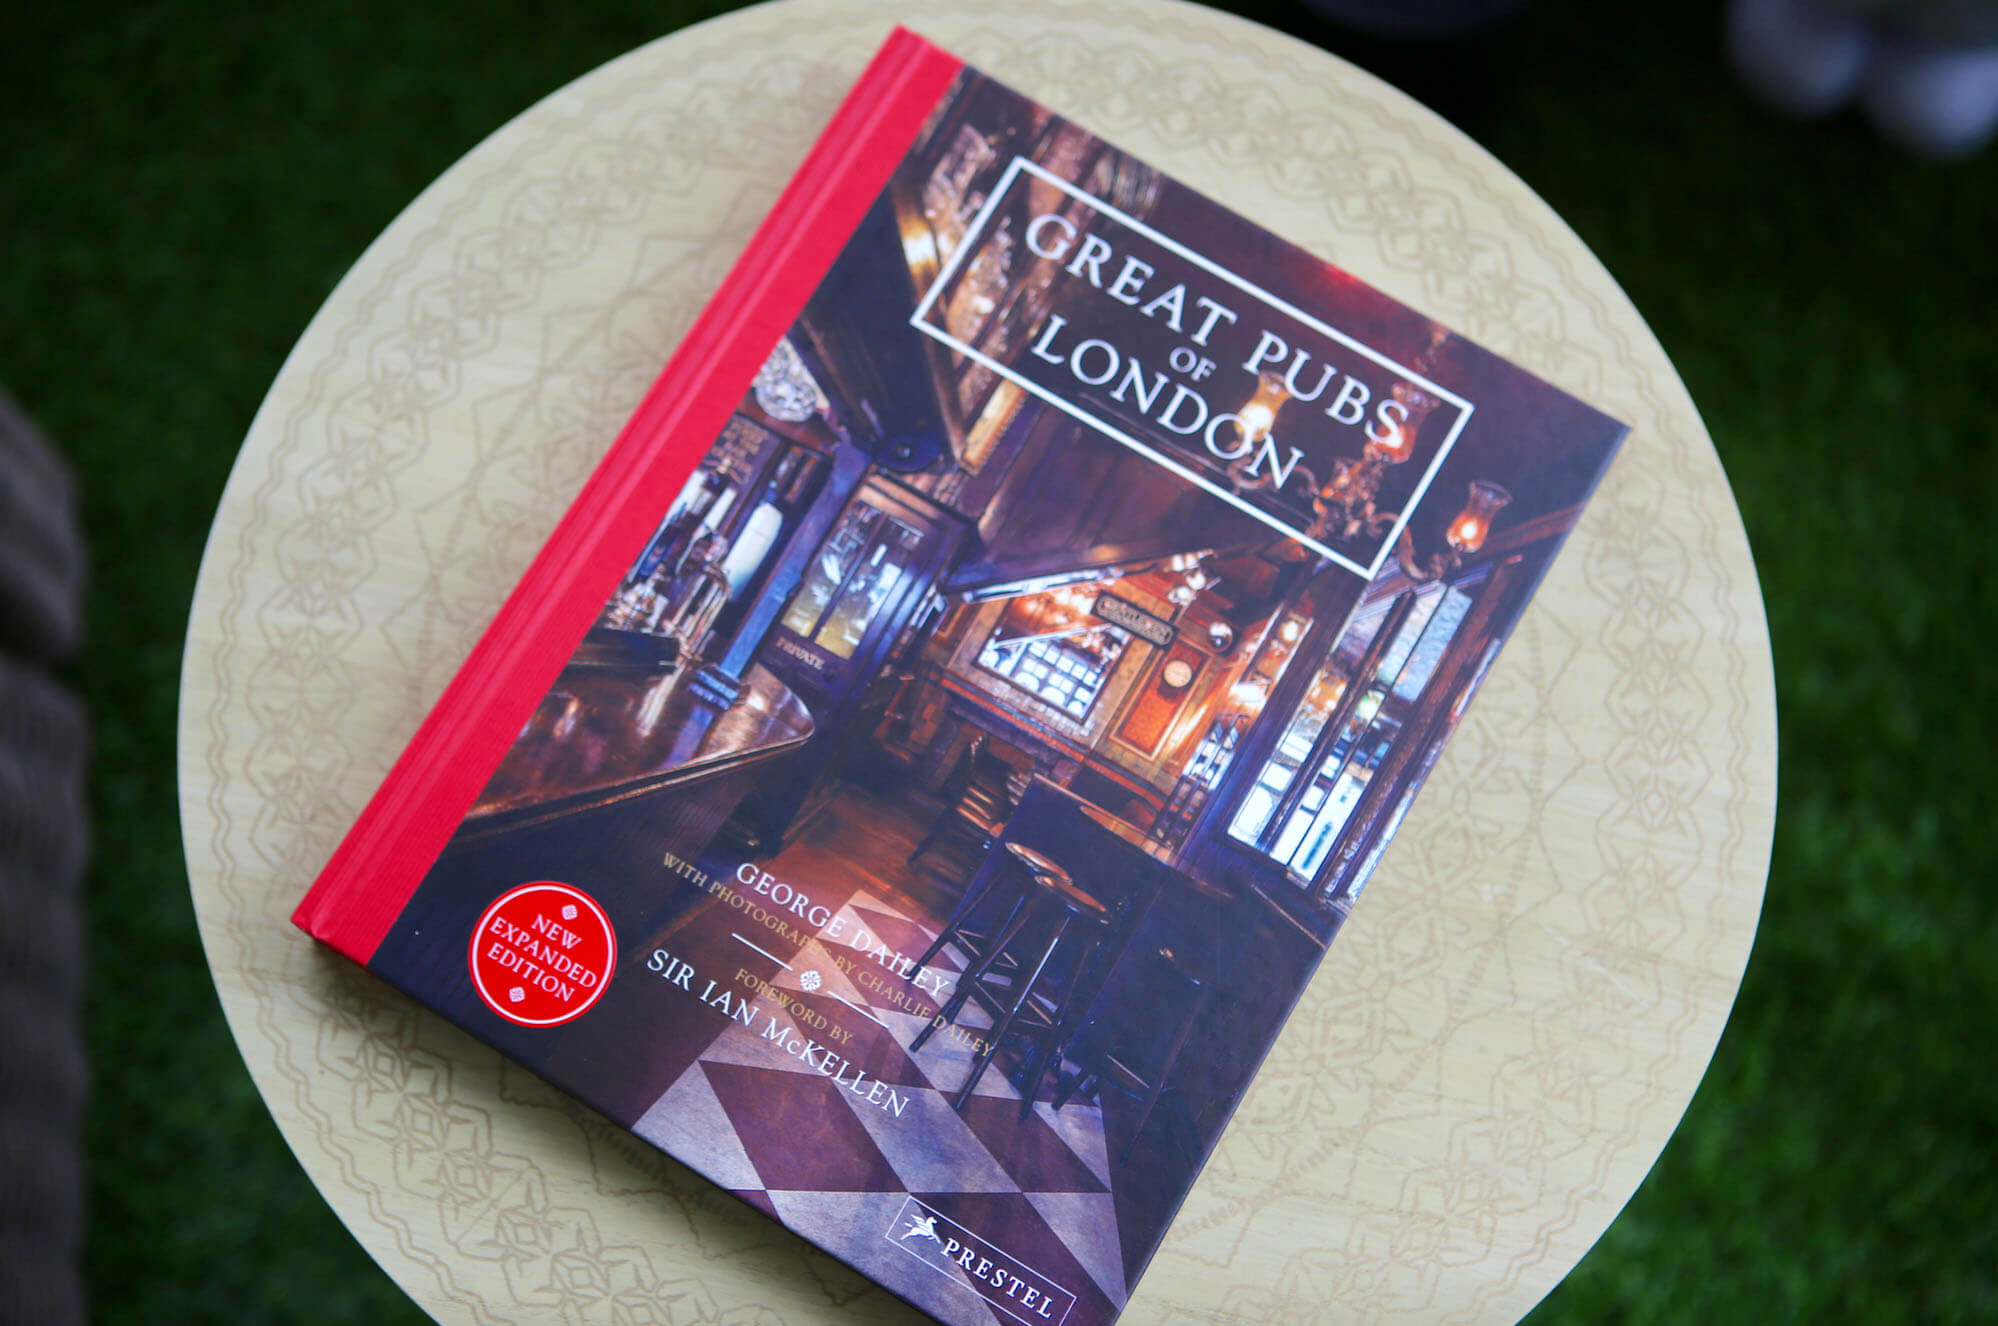 fathers day great pubs book